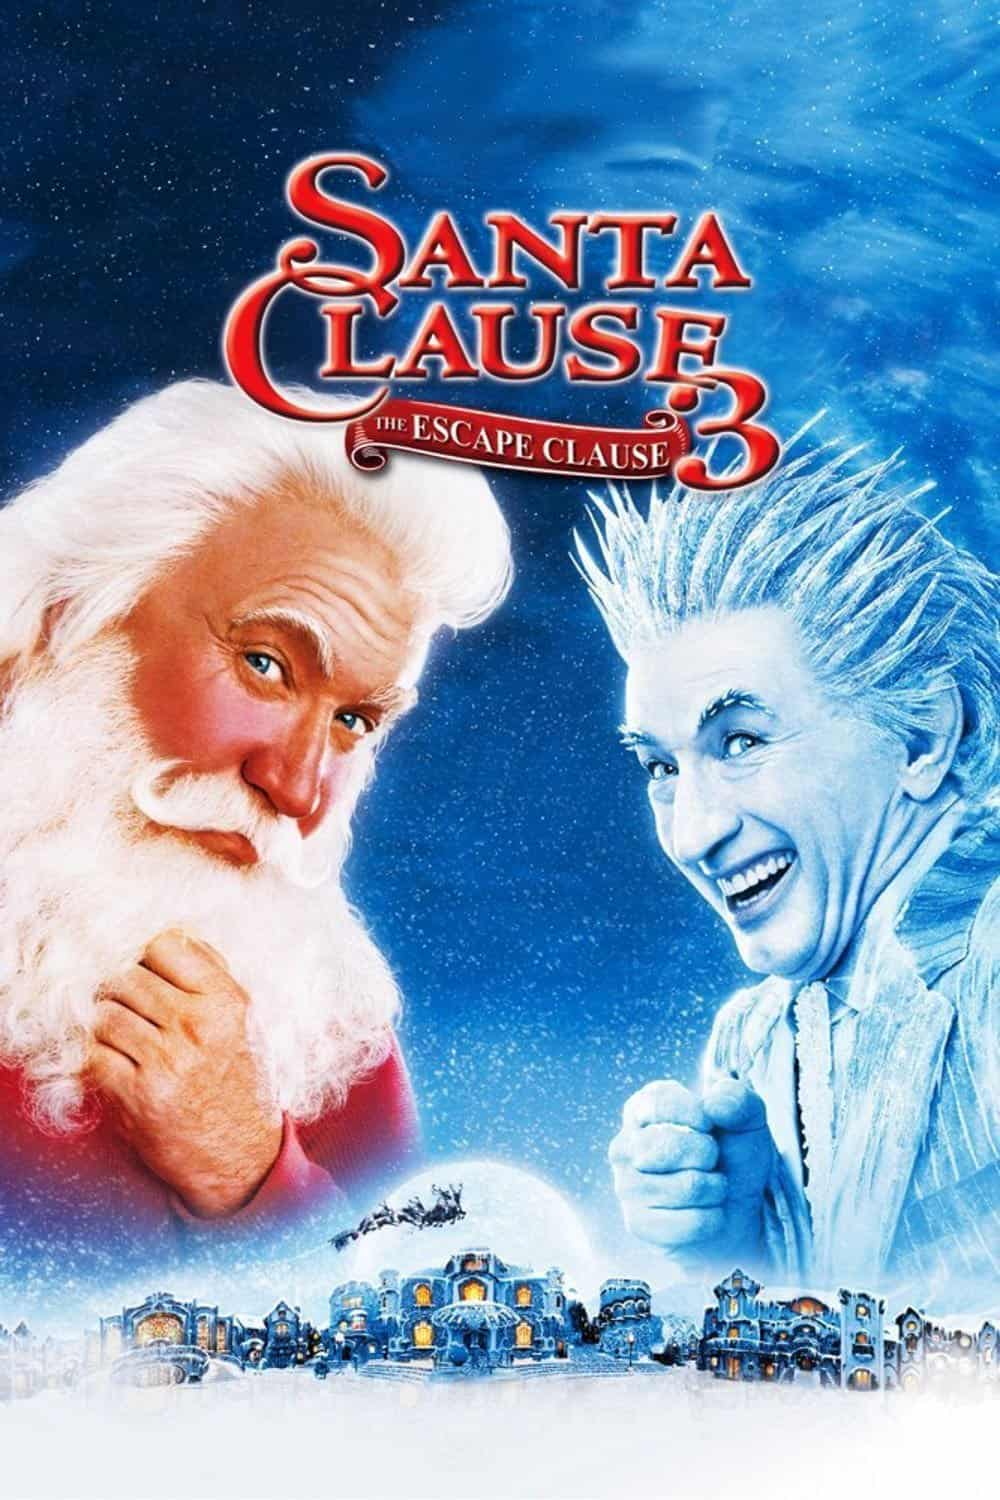 The Santa Clause 3: The Escape Clause, 2006